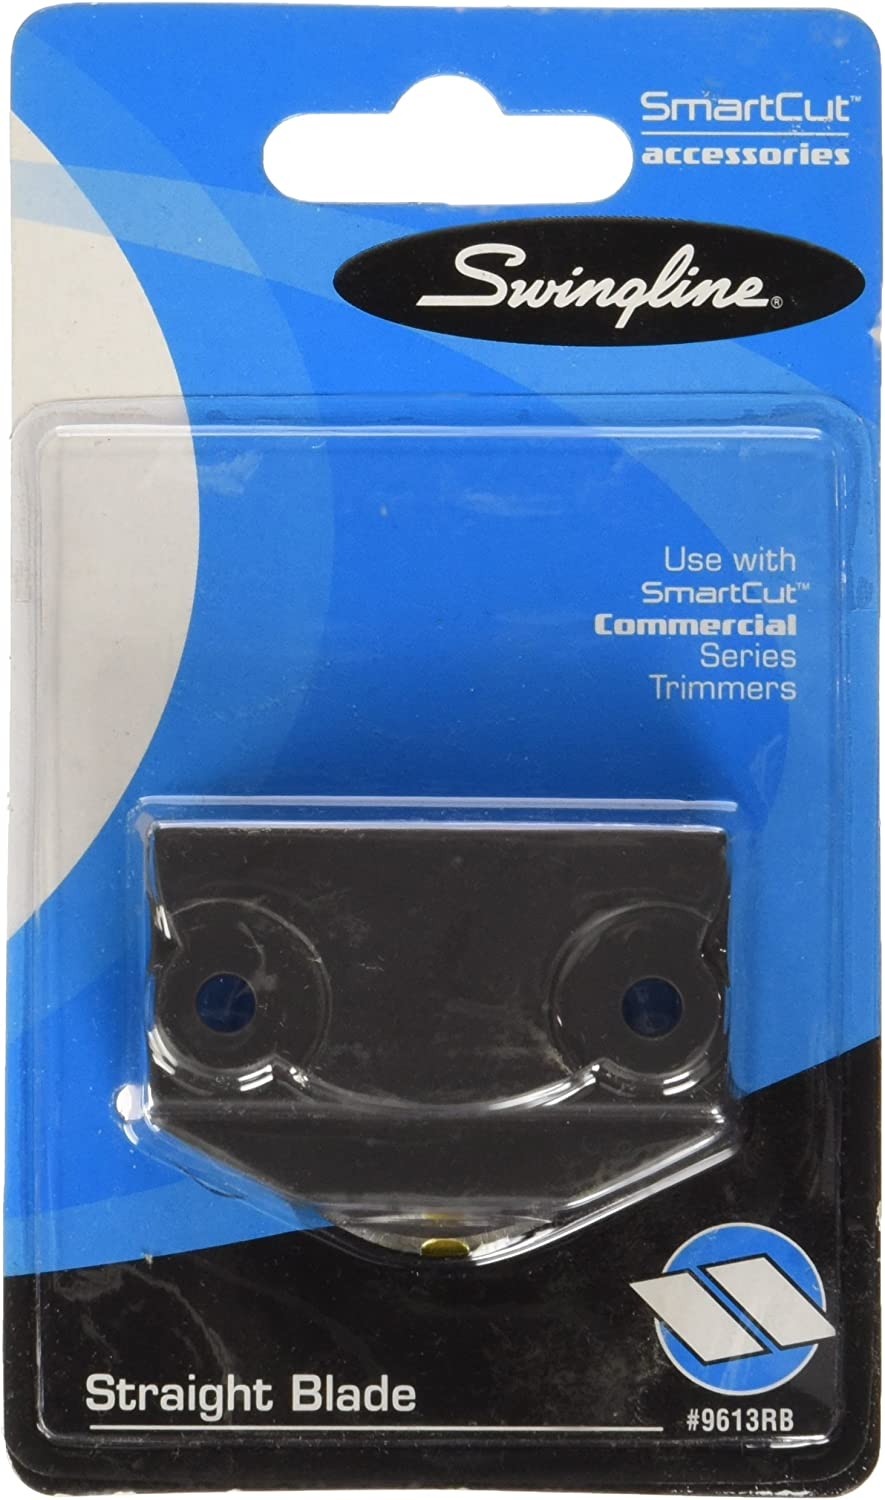 Swingline Replacement Blade for SmartCut Commercial Series Paper Trimmers, Straight Blade (9613RB)